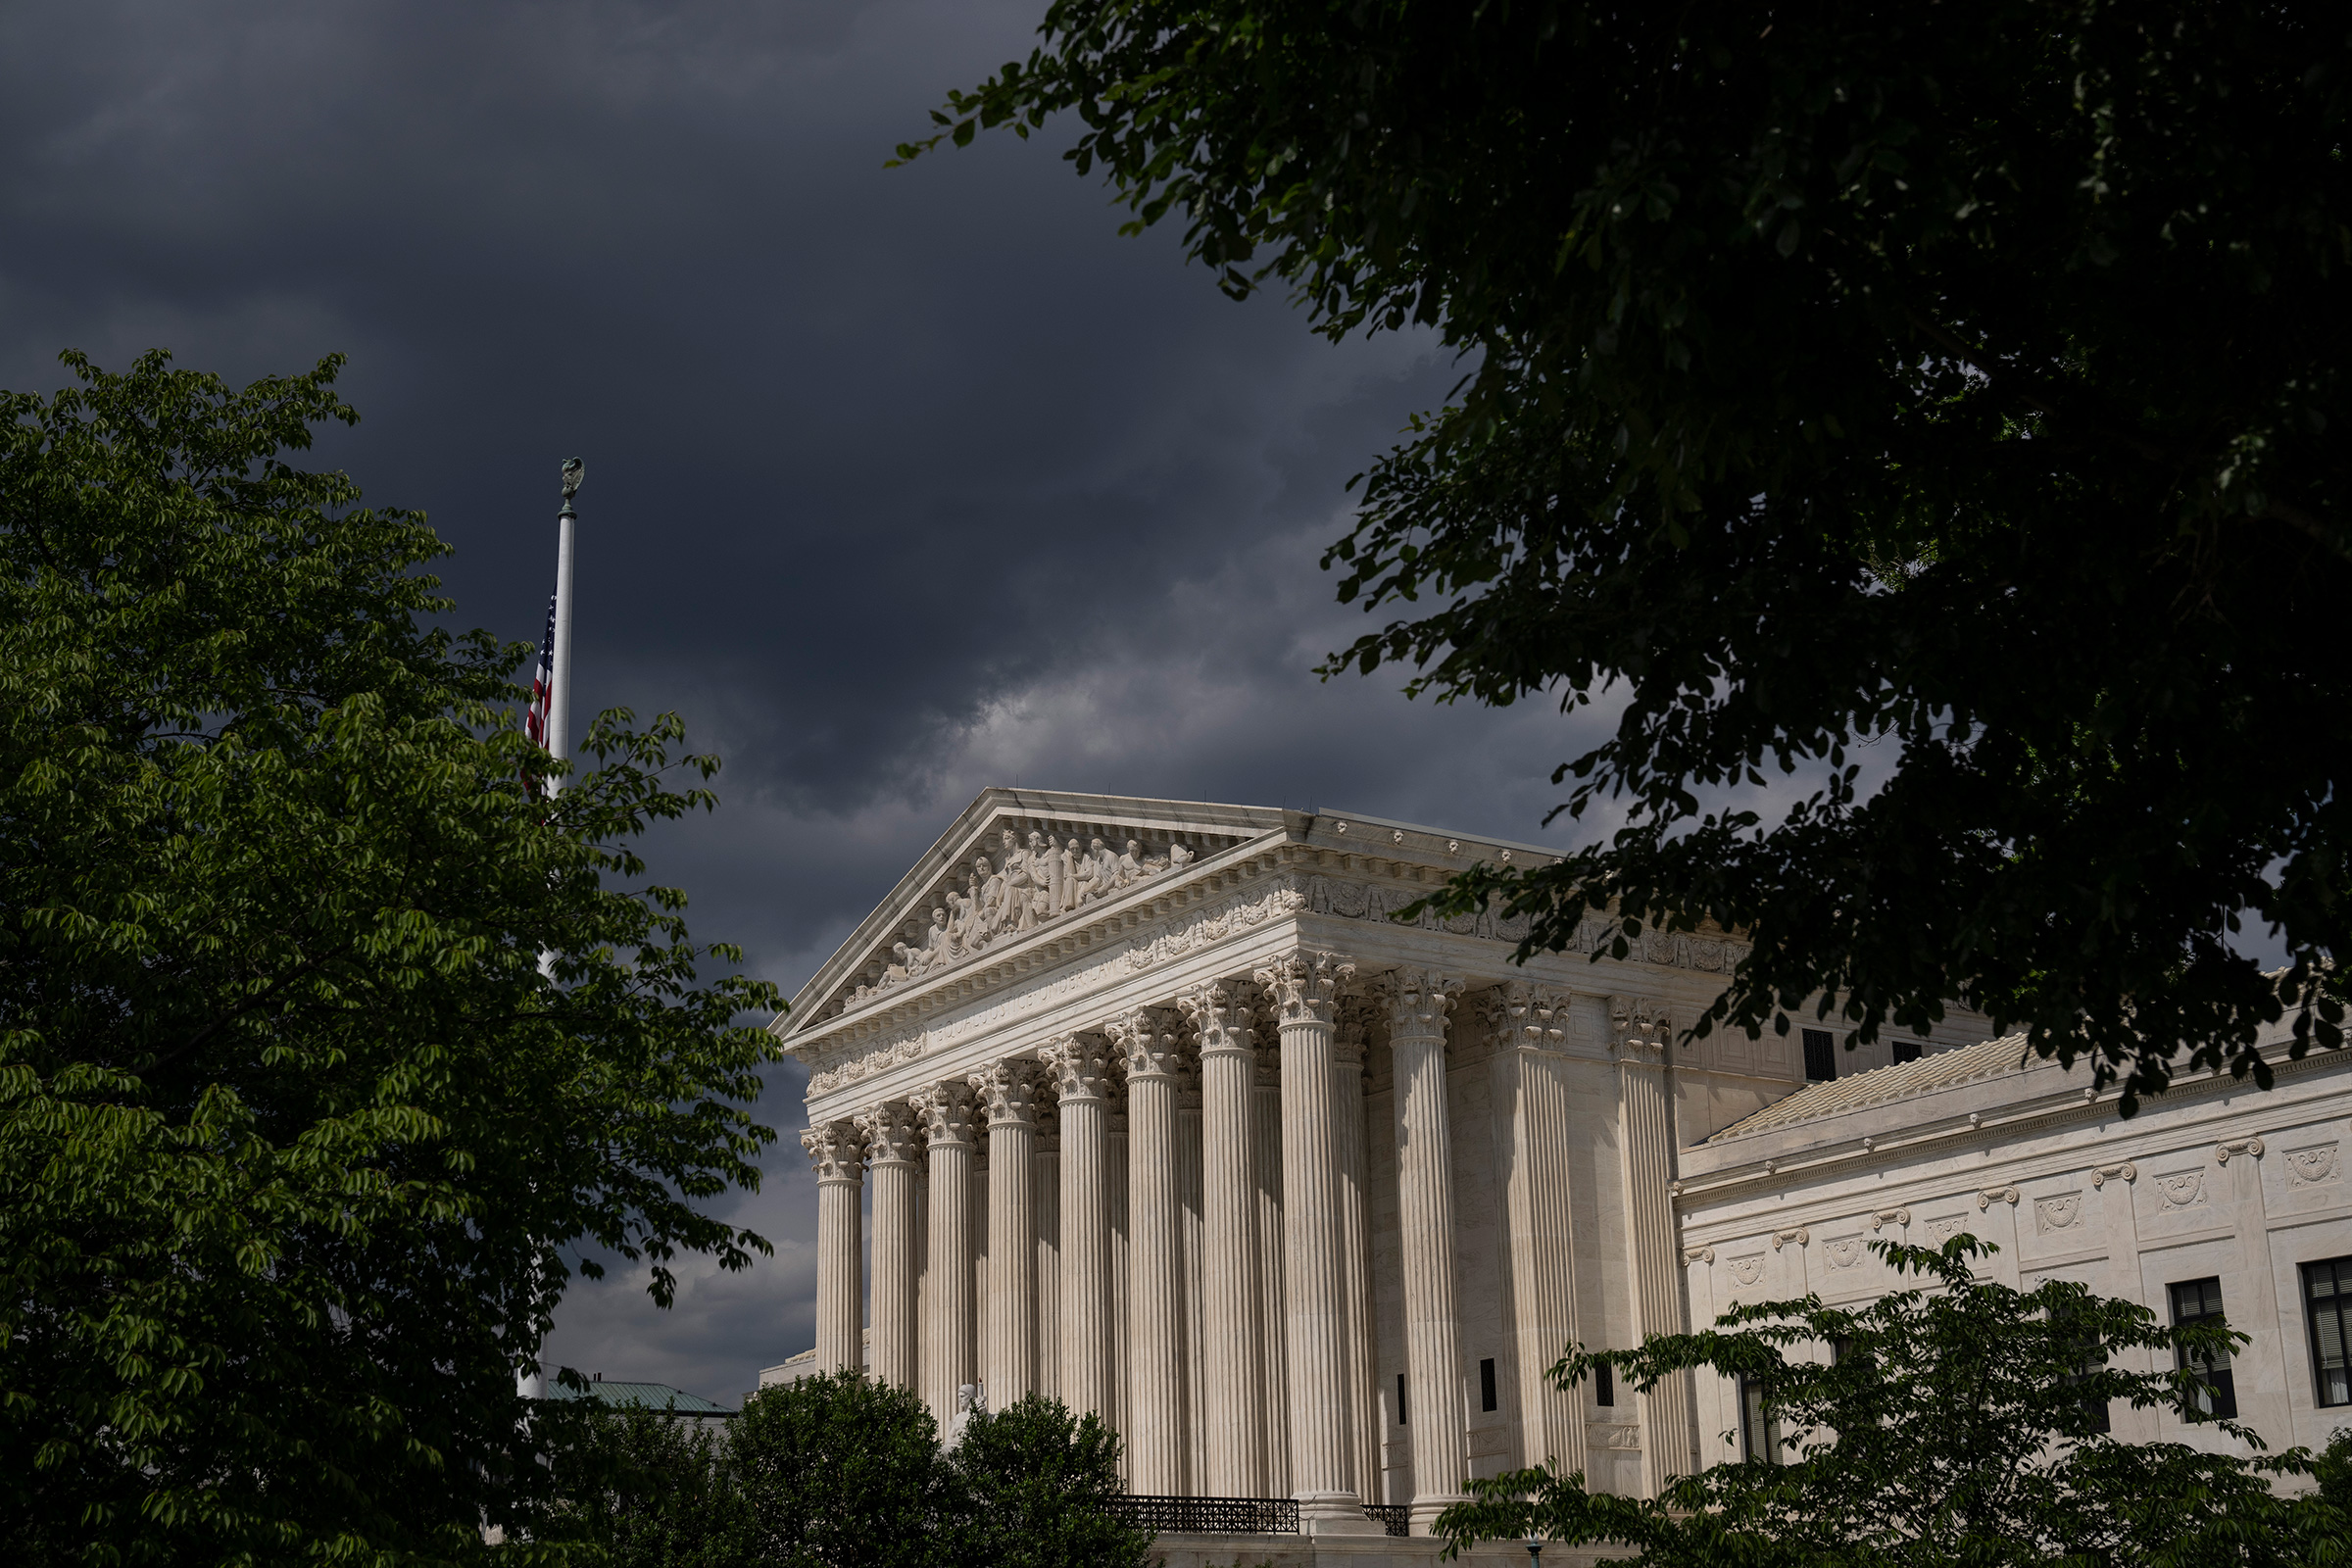 The U.S. Supreme Court building in Washington, D.C., on May 17, 2021.